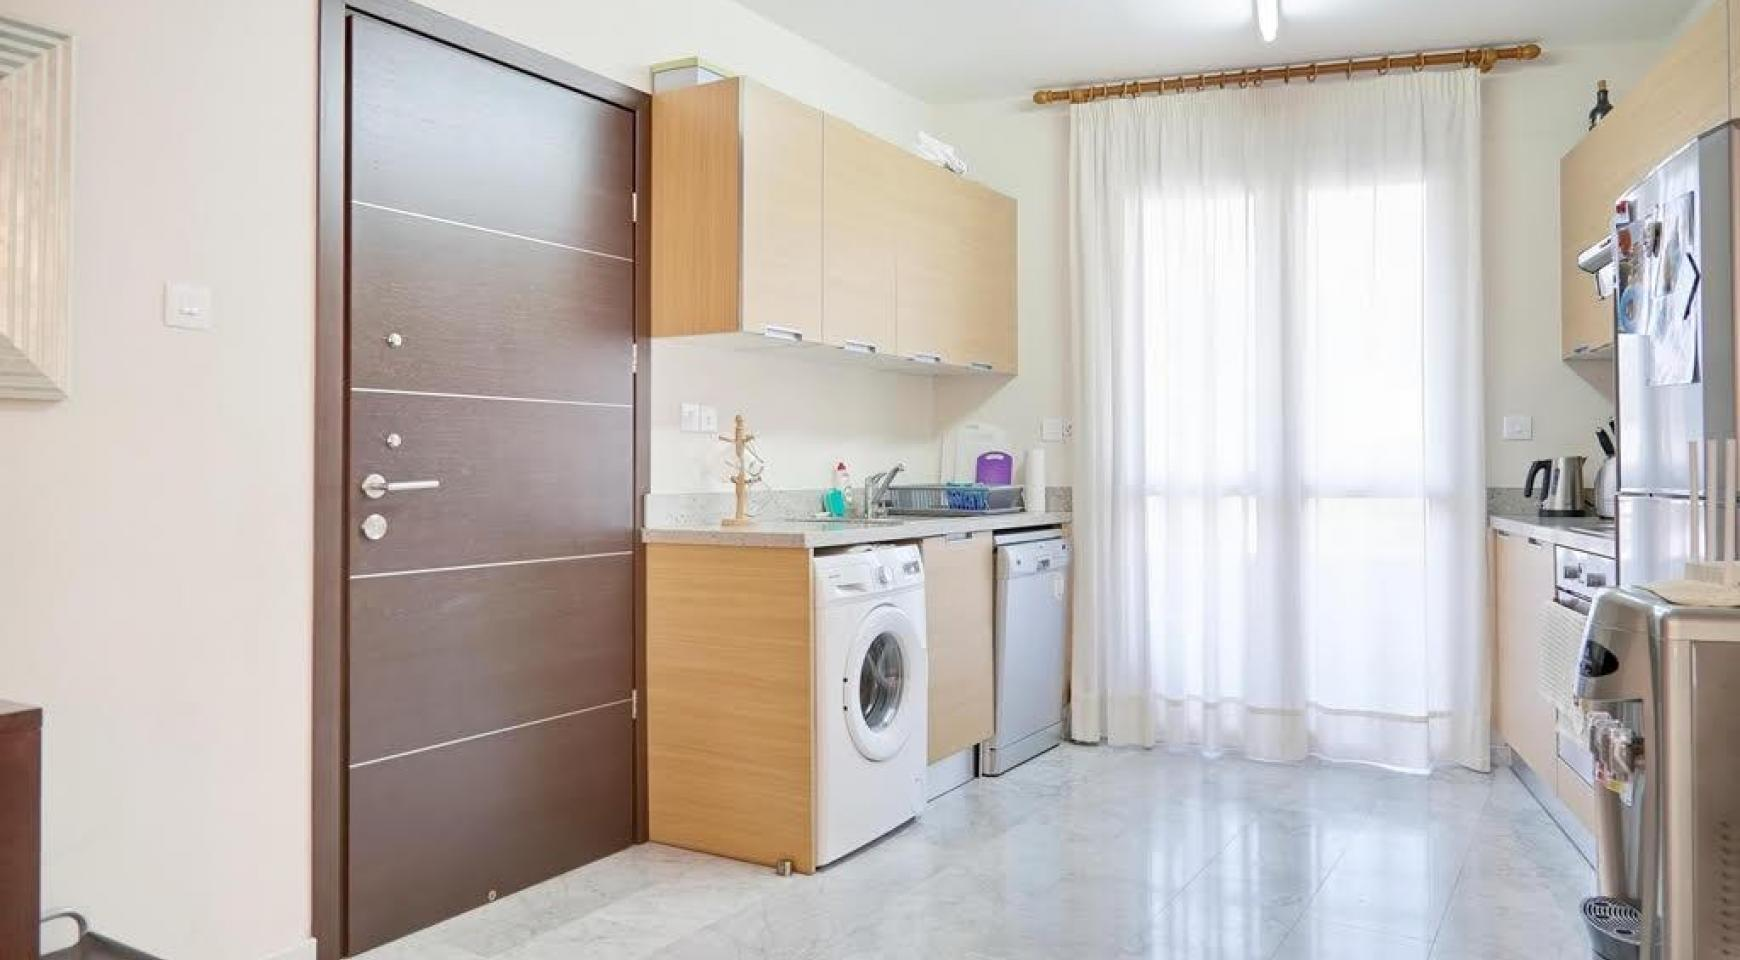 Luxury 2 Bedroom Apartment Amathusa F 104 near the Beach - 3